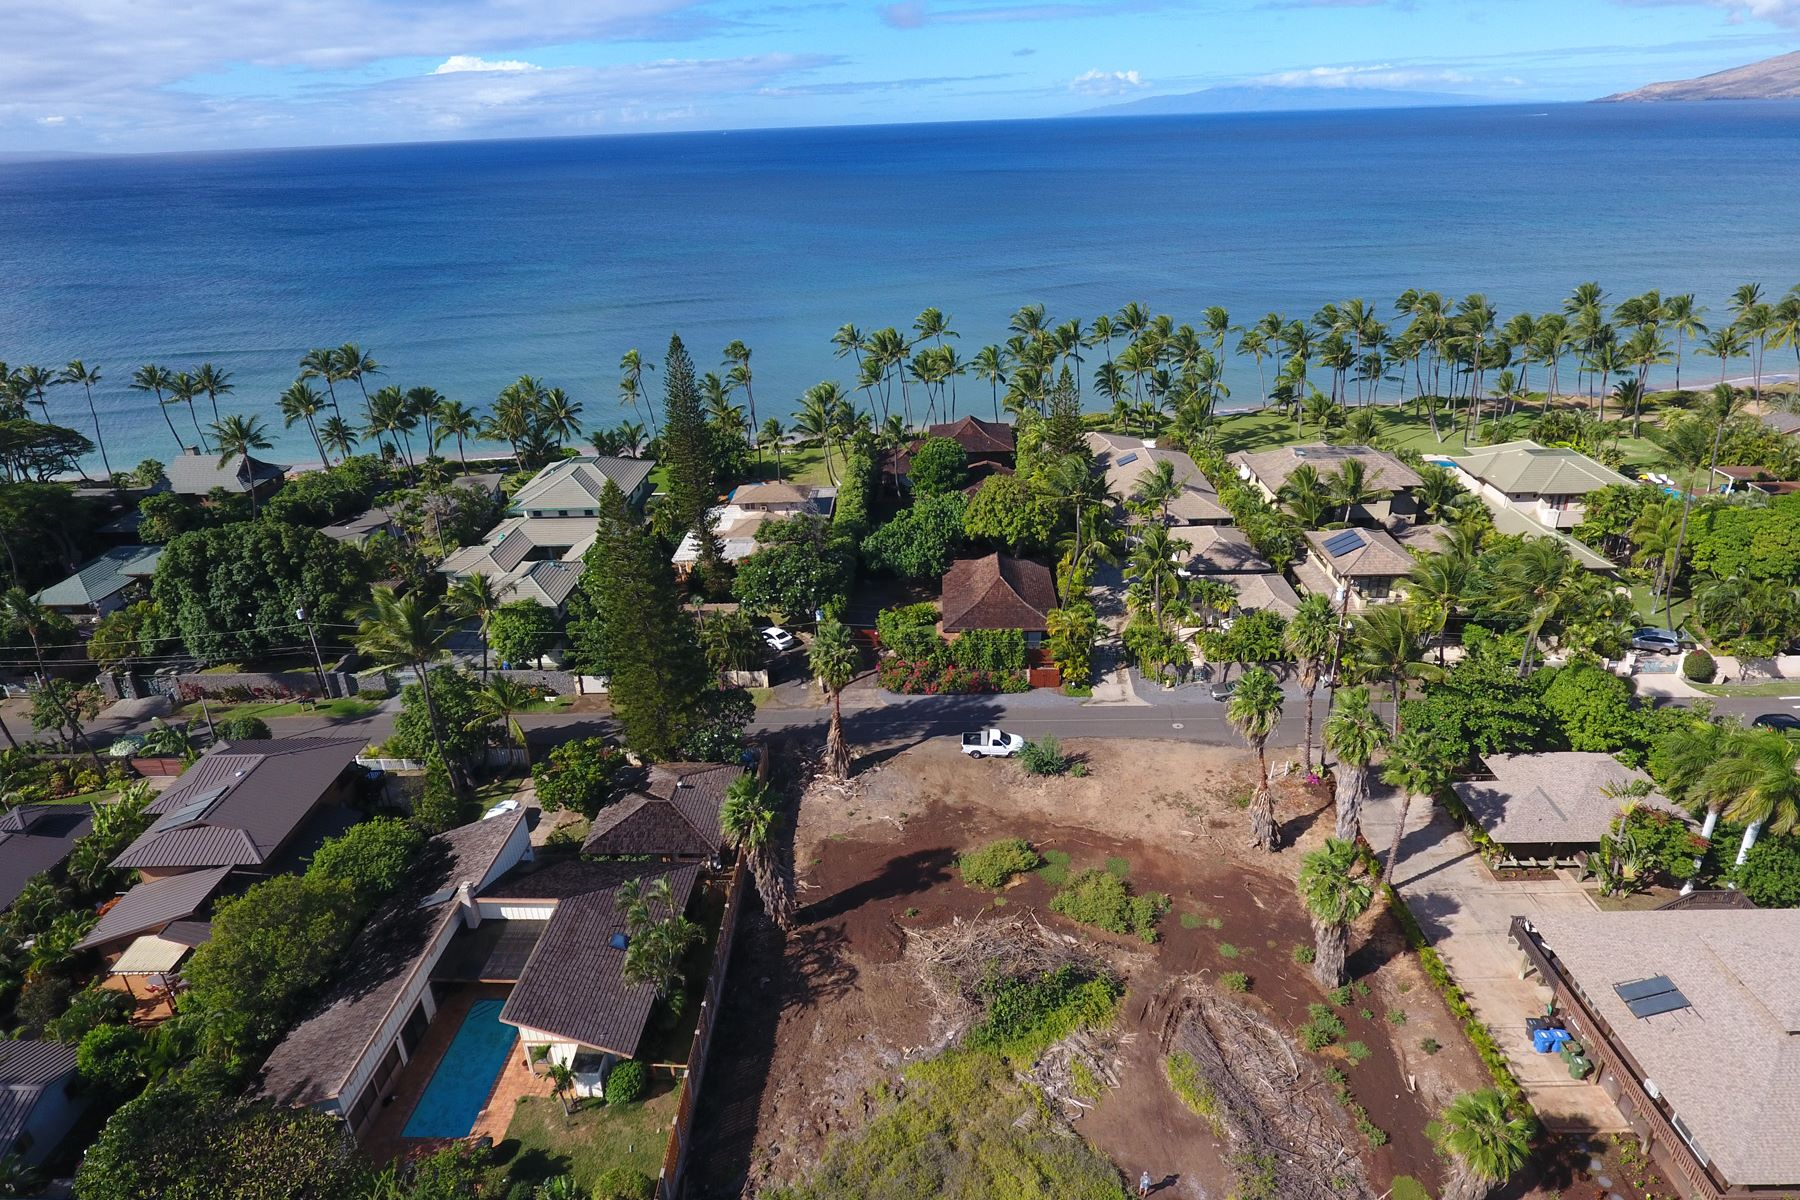 Land for Sale at Build your Maui Dream Home across from white sand beaches! 1519 Halama Street, Lot 1 Kihei, Hawaii 96753 United States